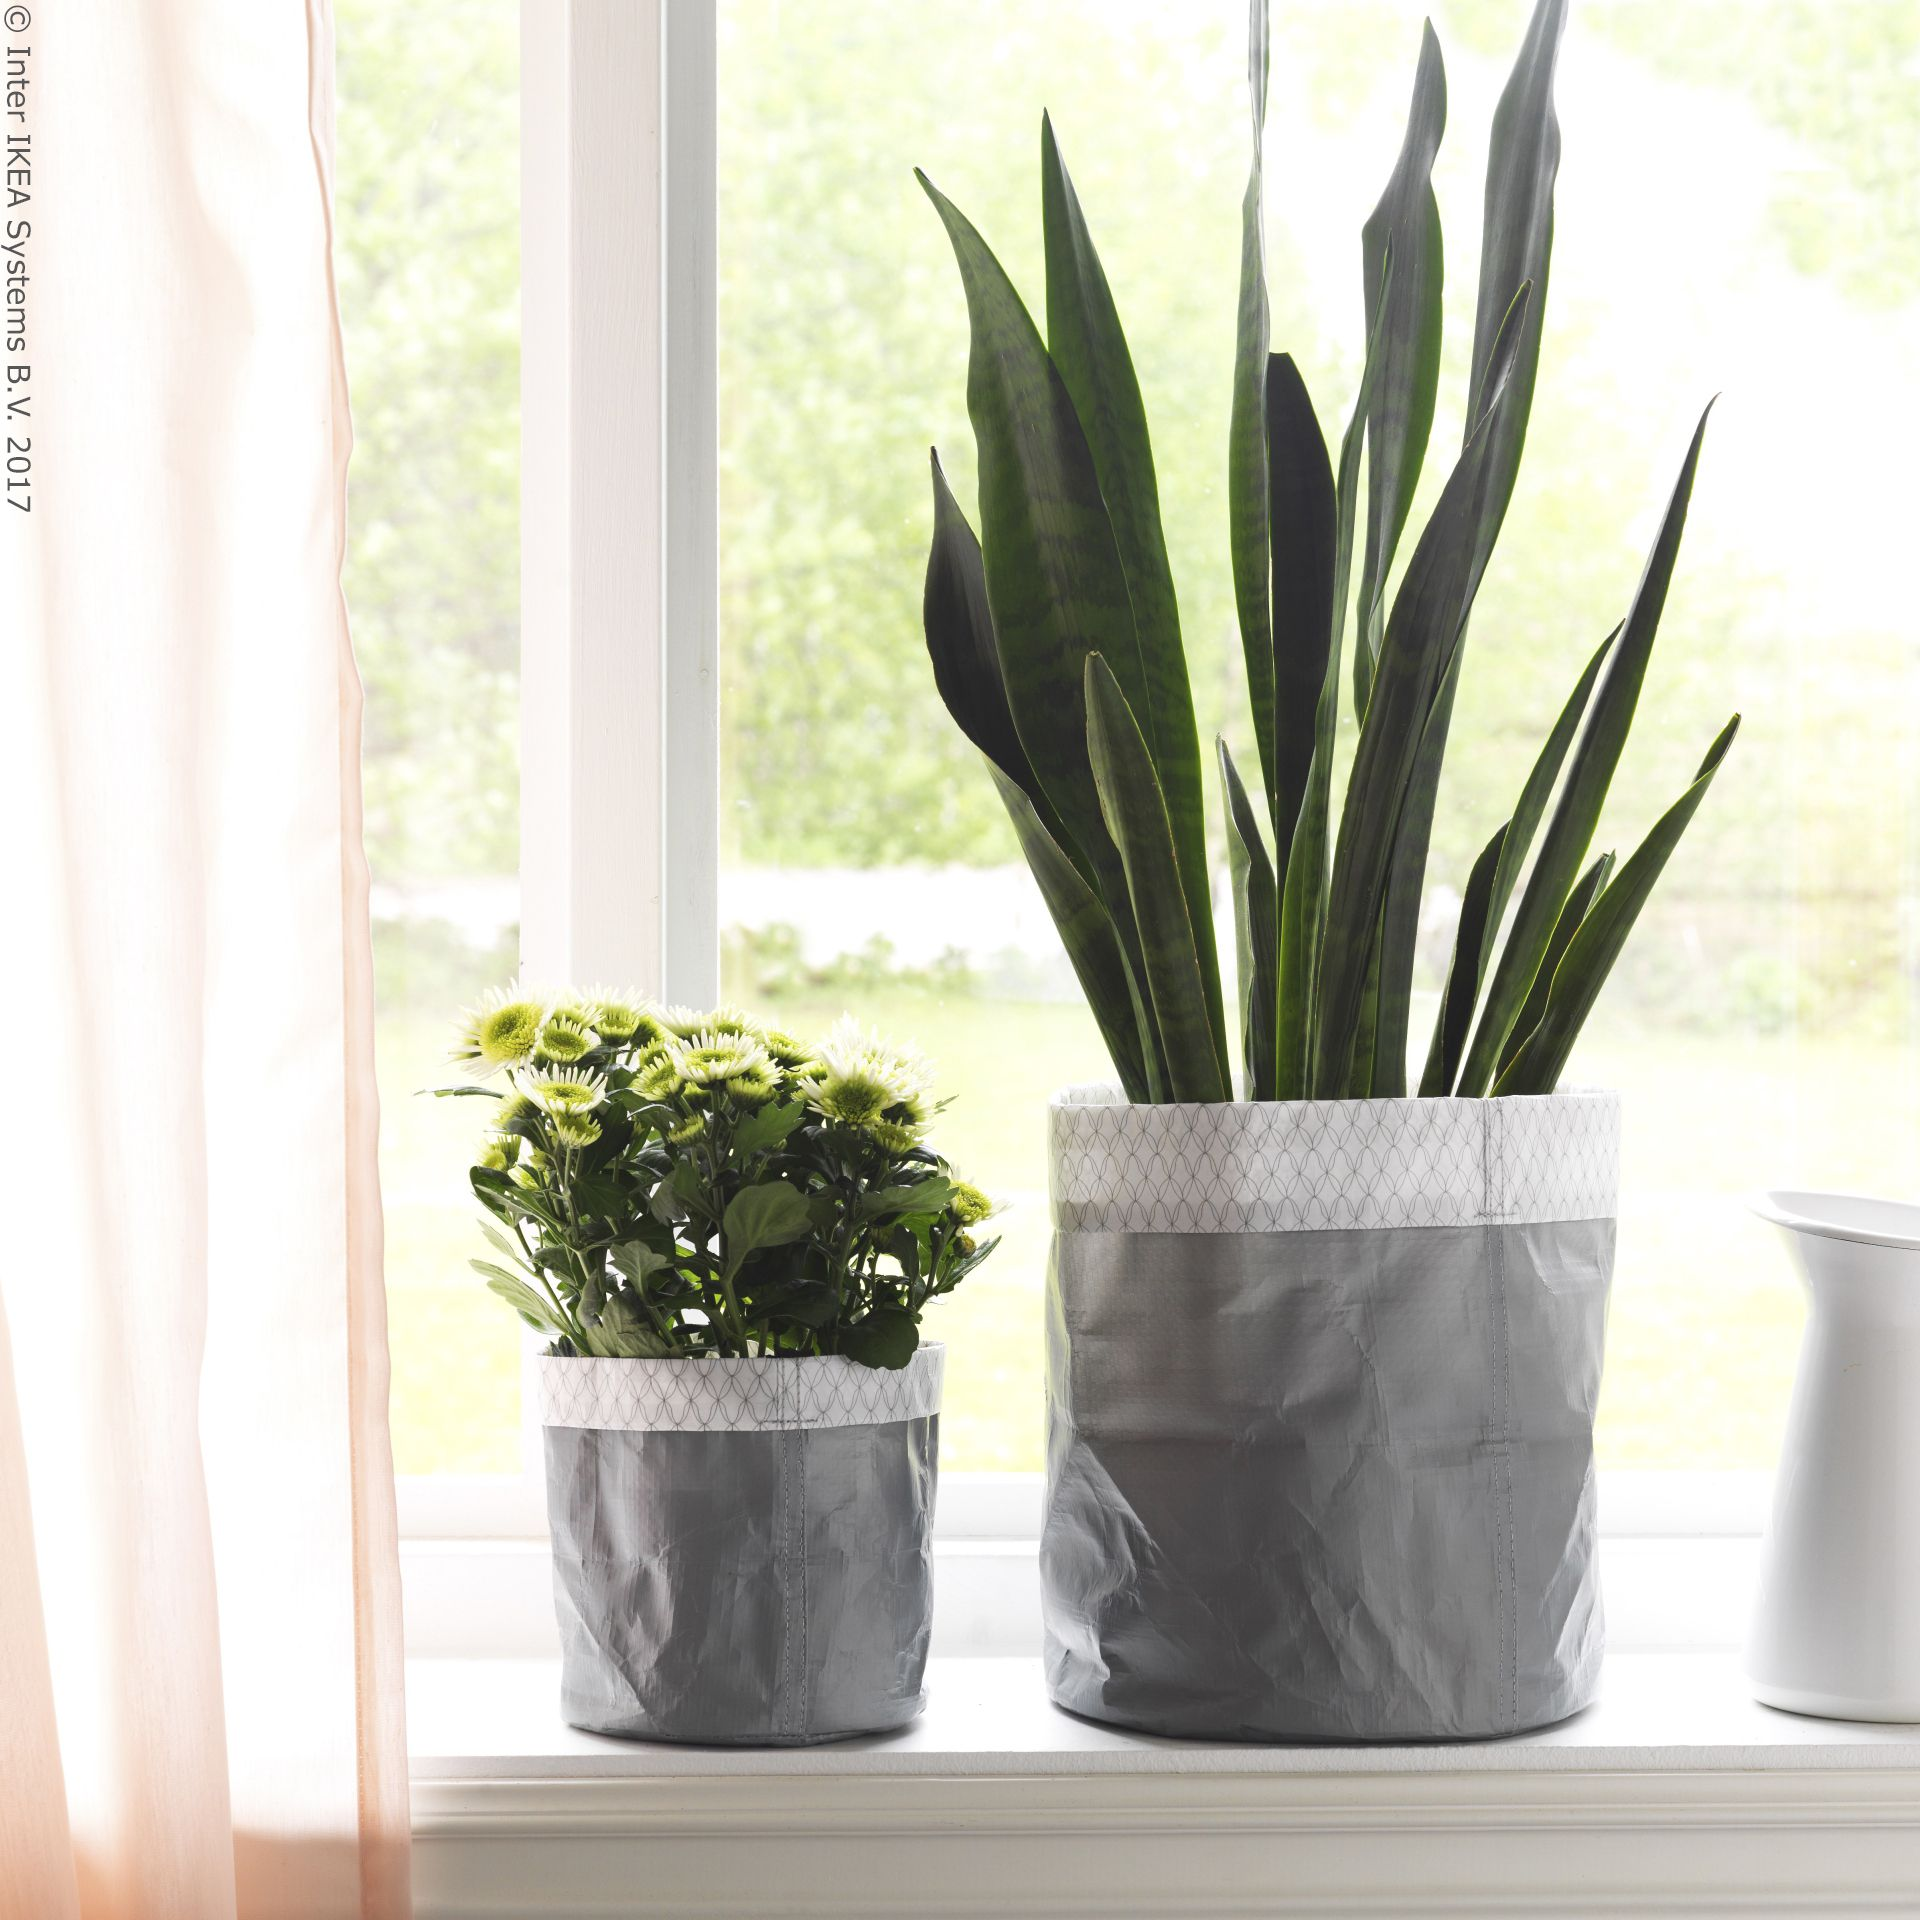 Explore Pot Sets, Plant Pots, And More